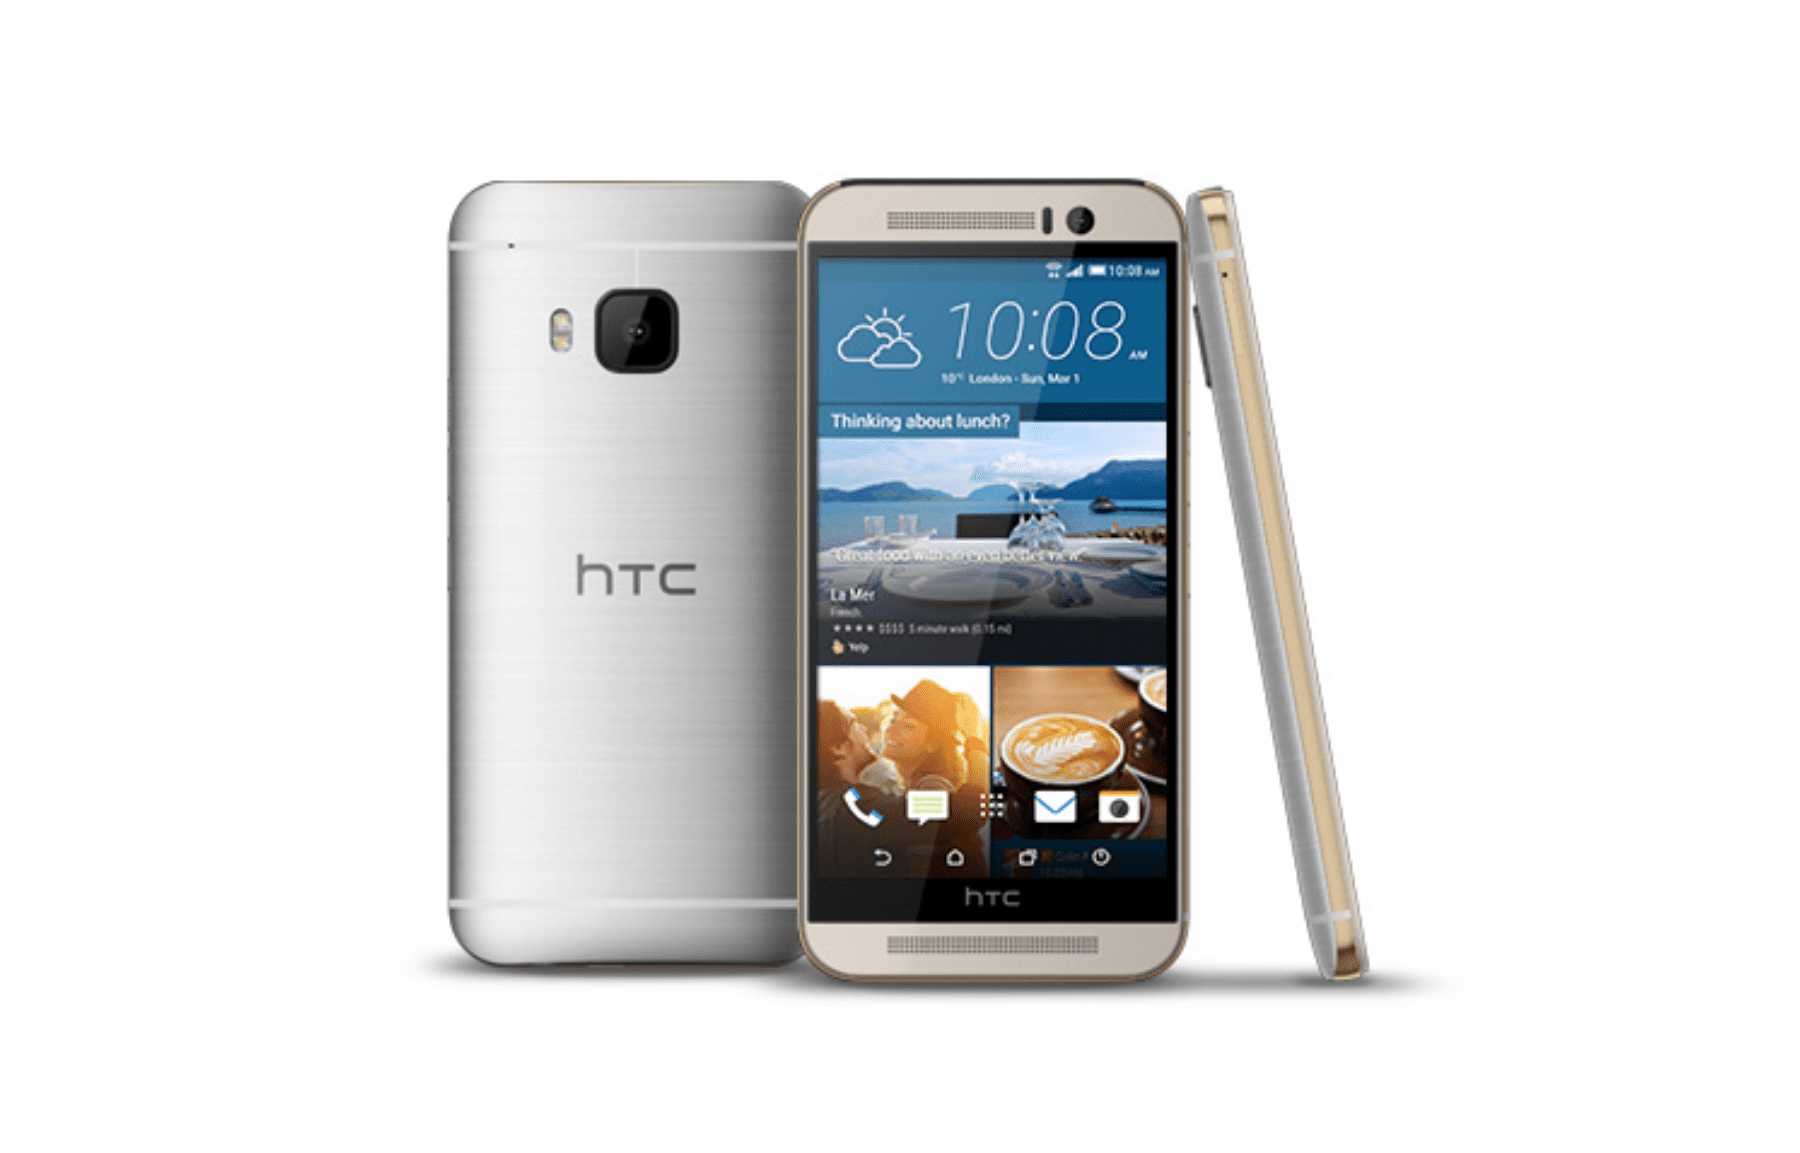 HTC One M9 smartphones, seen from back, front, and side